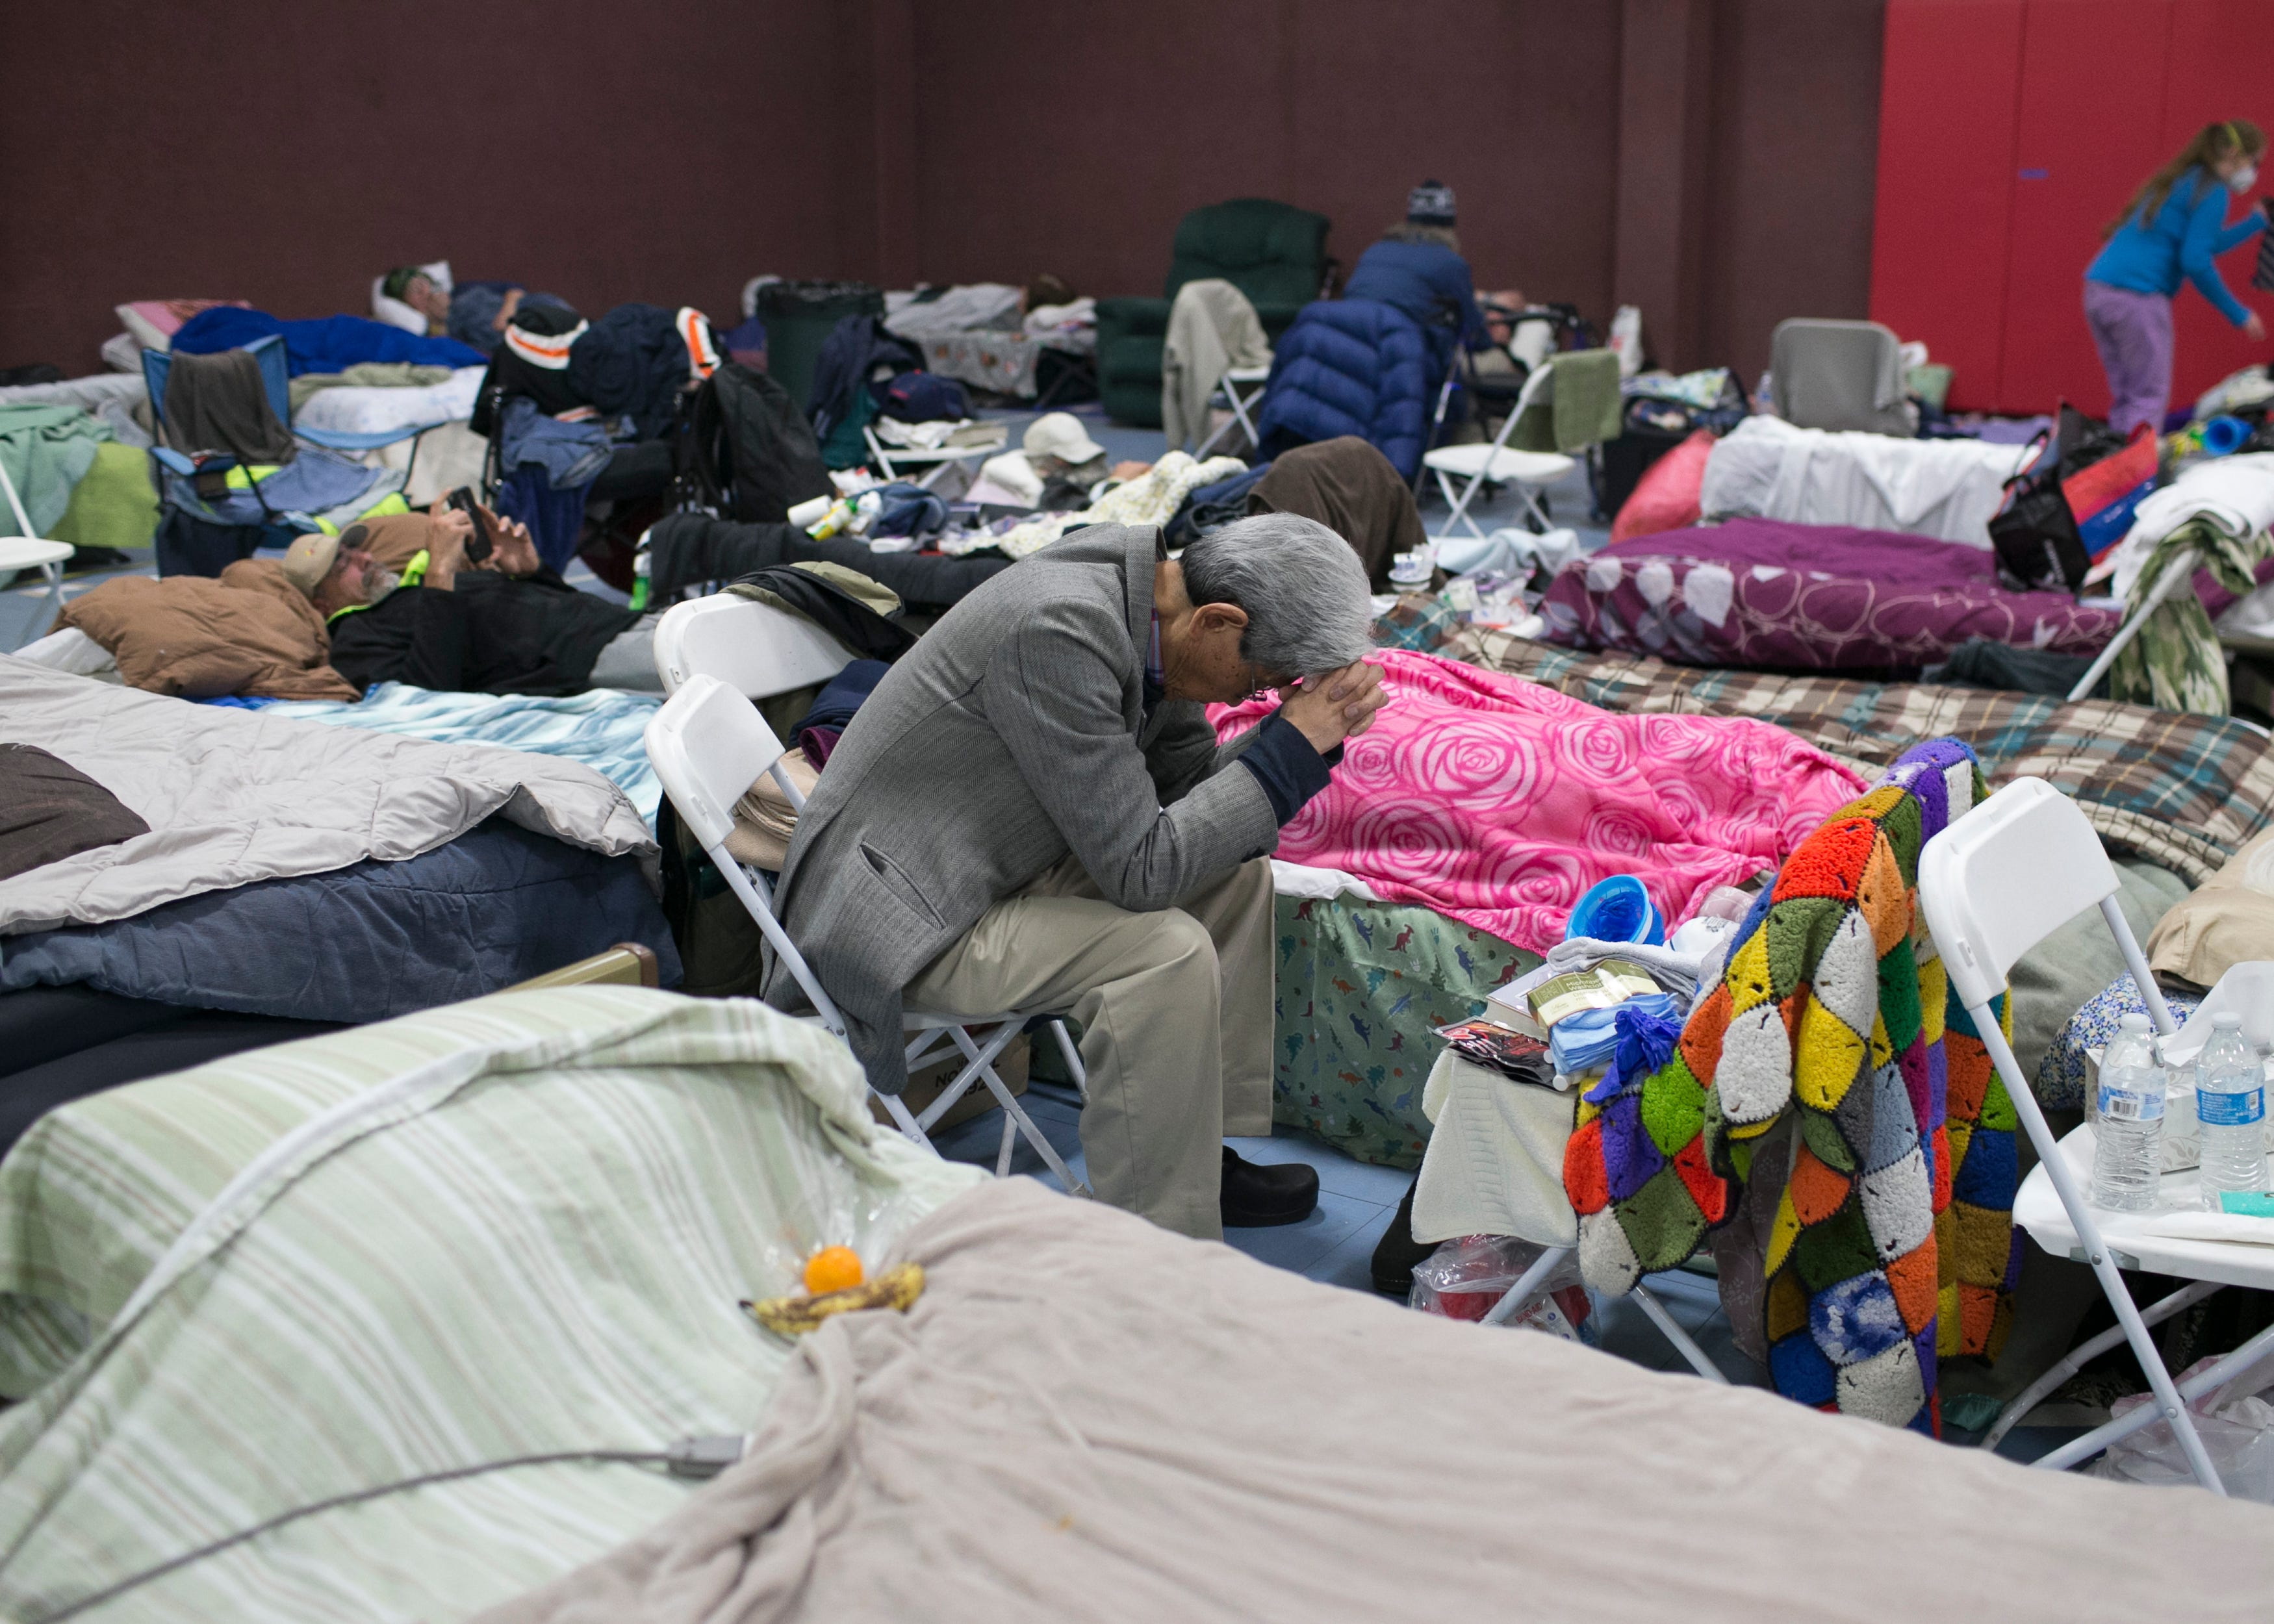 A Paradise evacuee rests with his head in his hands at the East Avenue Church Shelter in Chico on Nov. 15, 2018. The shelter filled less than a week after the fire.